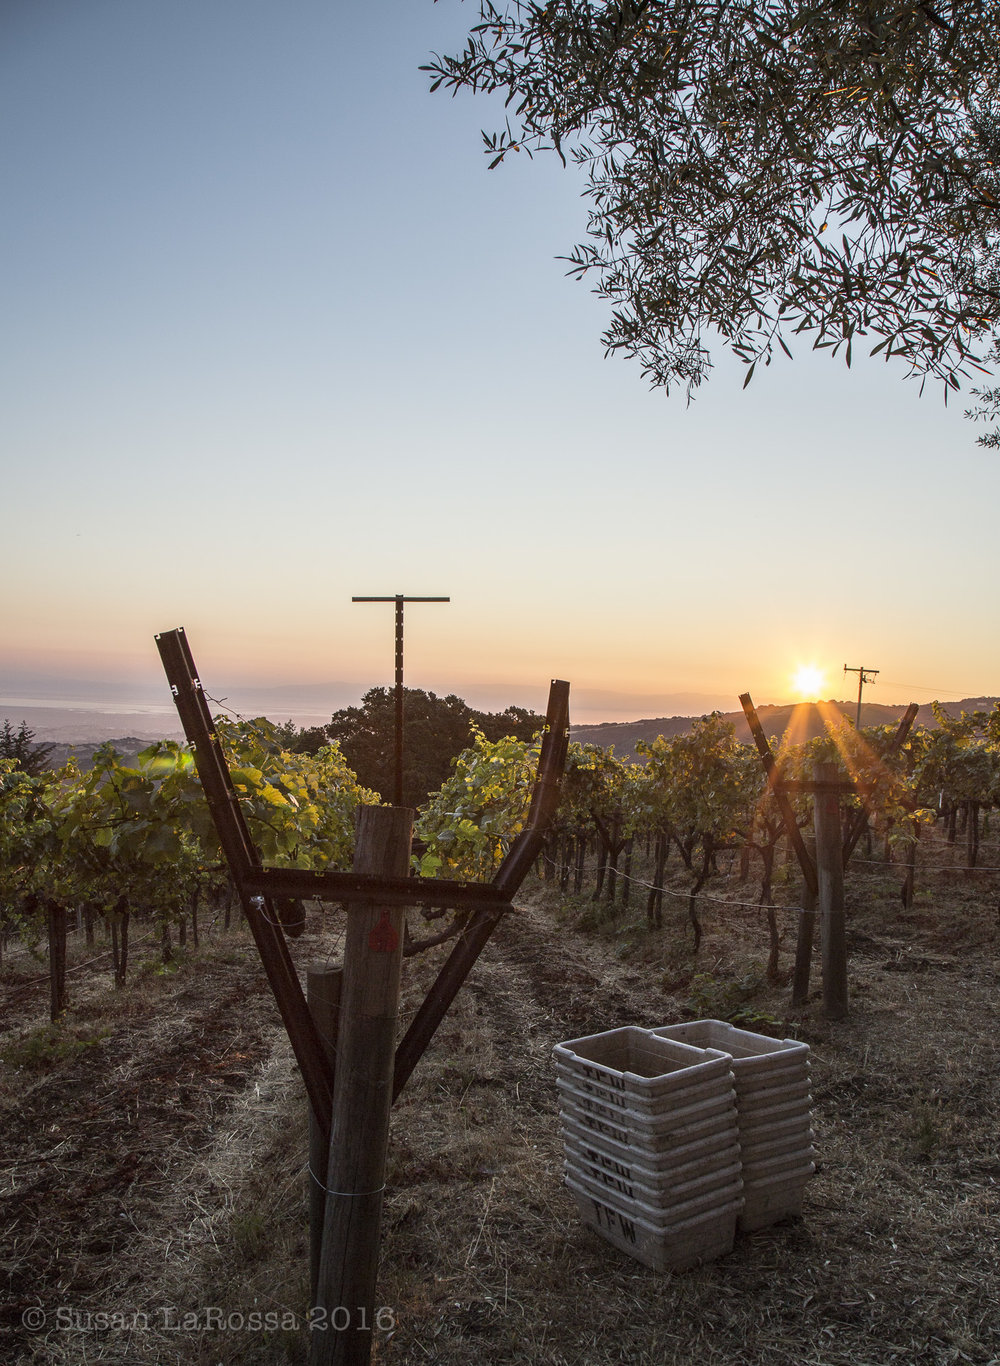 Rapley Trail Vineyard at dawn, September 7, 2016